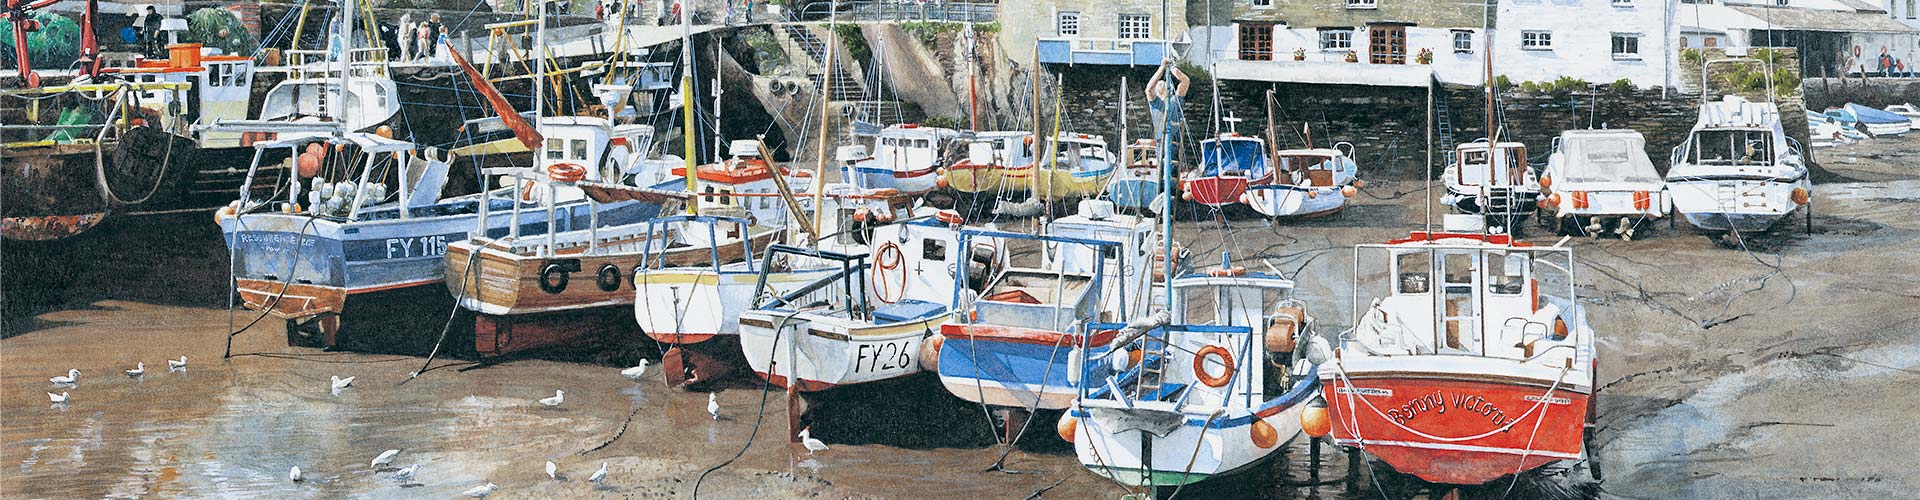 #02109 polperro cornwall. Copyright - Alistair Butt RSMA